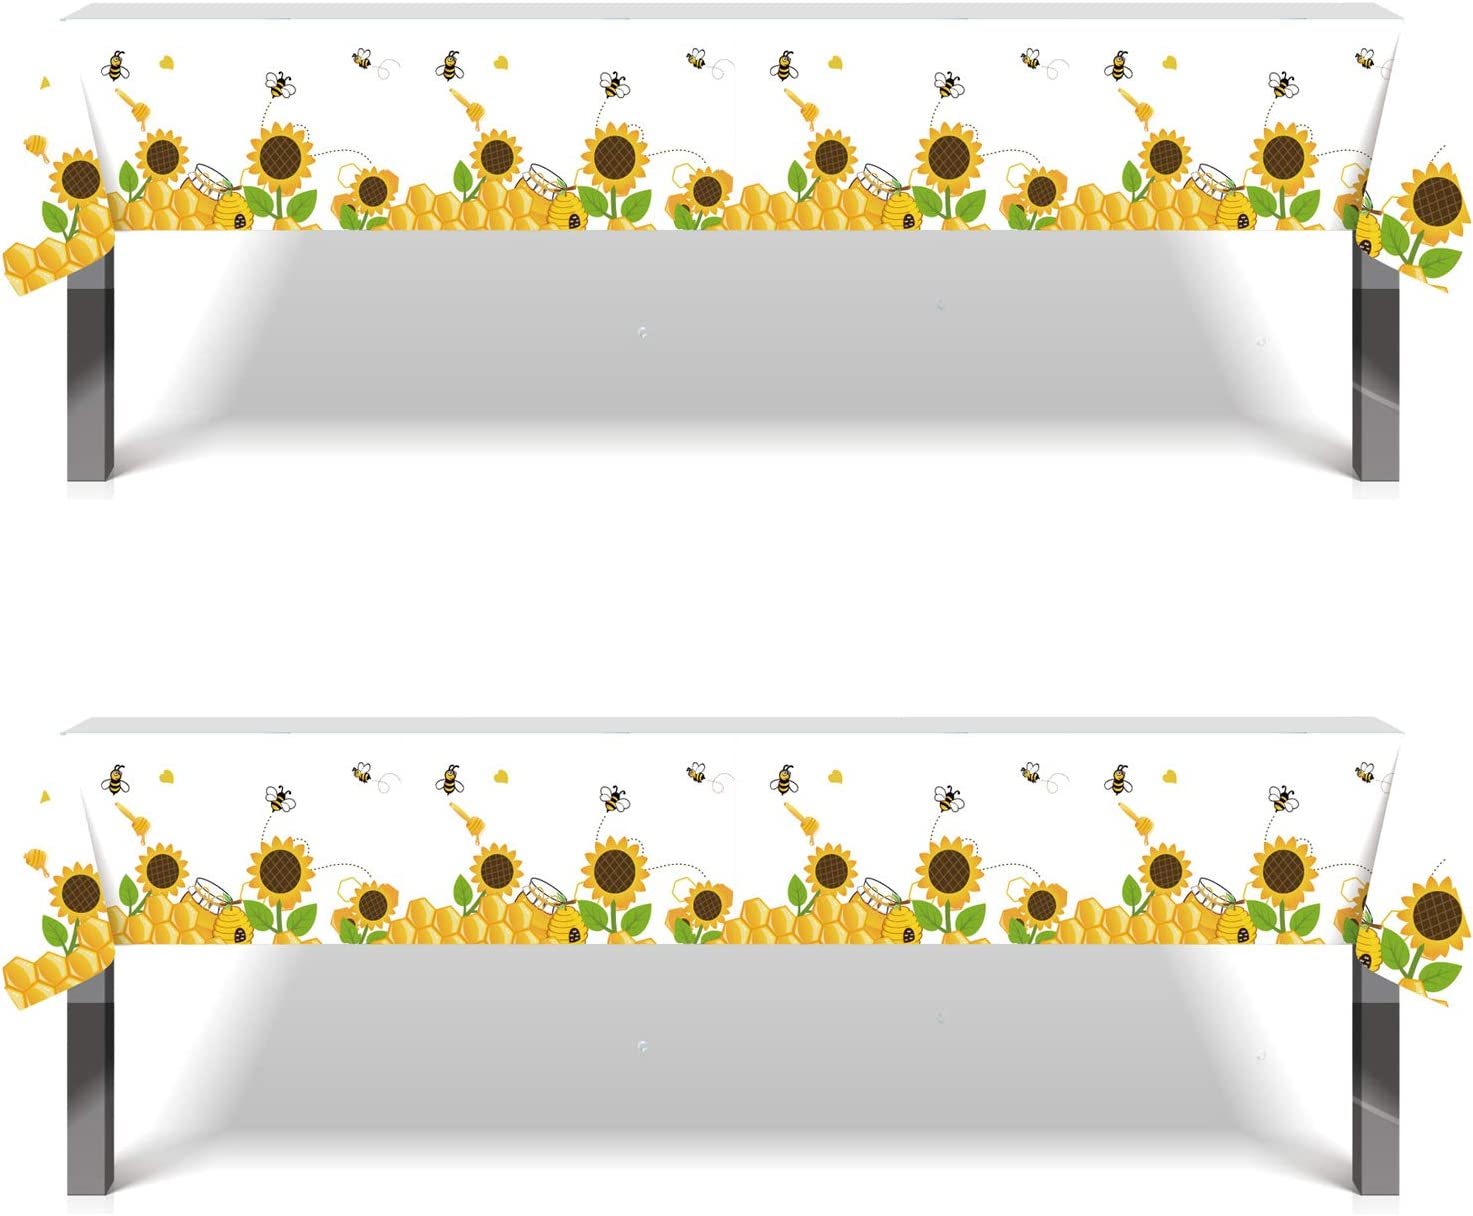 Bee Themed Party Supplies Decorations Kids Baby Shower Wedding Birthday Party Favors 86.6x52 Inch Disposable Printed Plastic Tablecloth Bumblebee Baby Plastic Table Cover